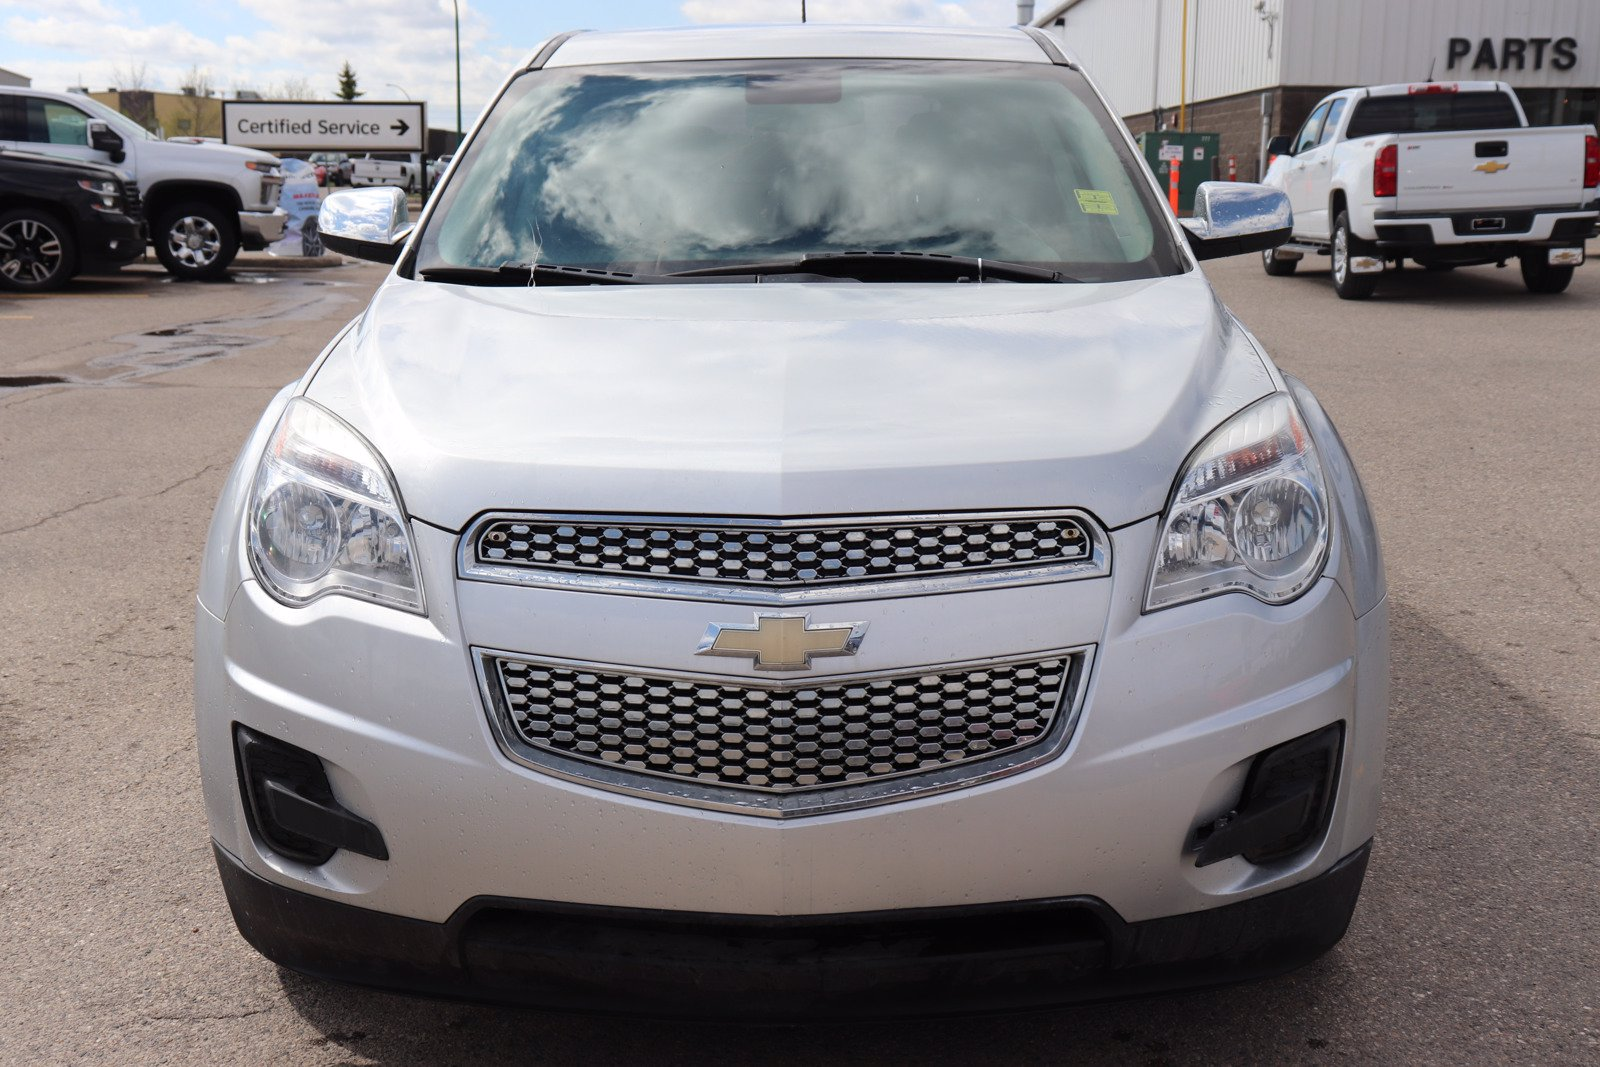 Pre-Owned 2013 Chevrolet Equinox LS - AWD, Bluetooth, Remote Start Alloys